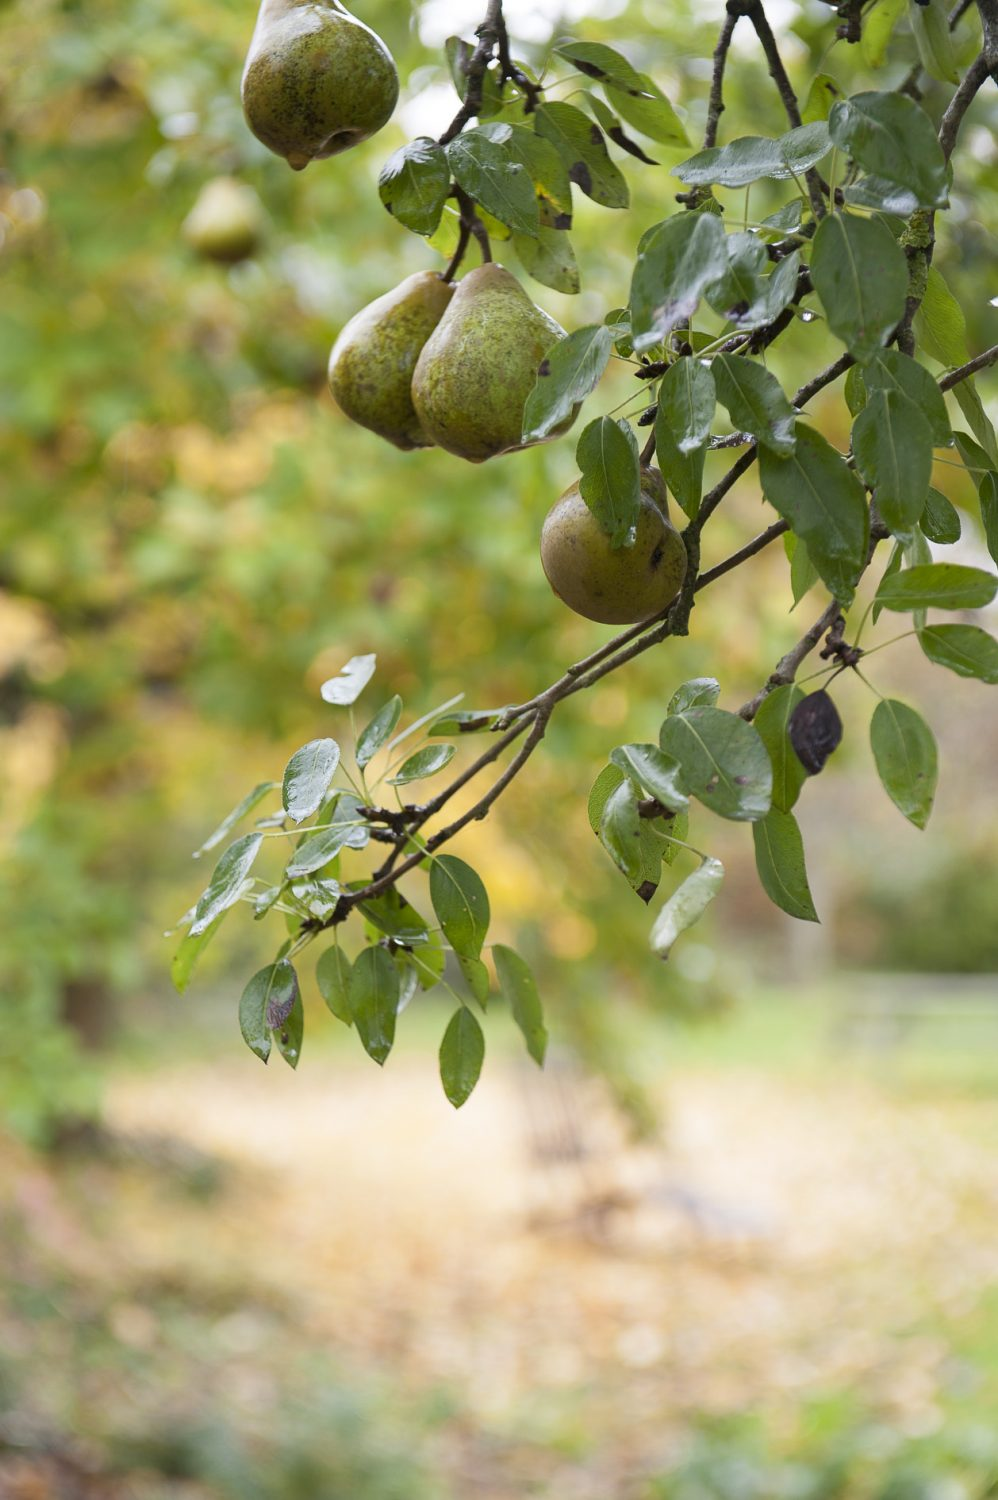 Pears in the drizzle